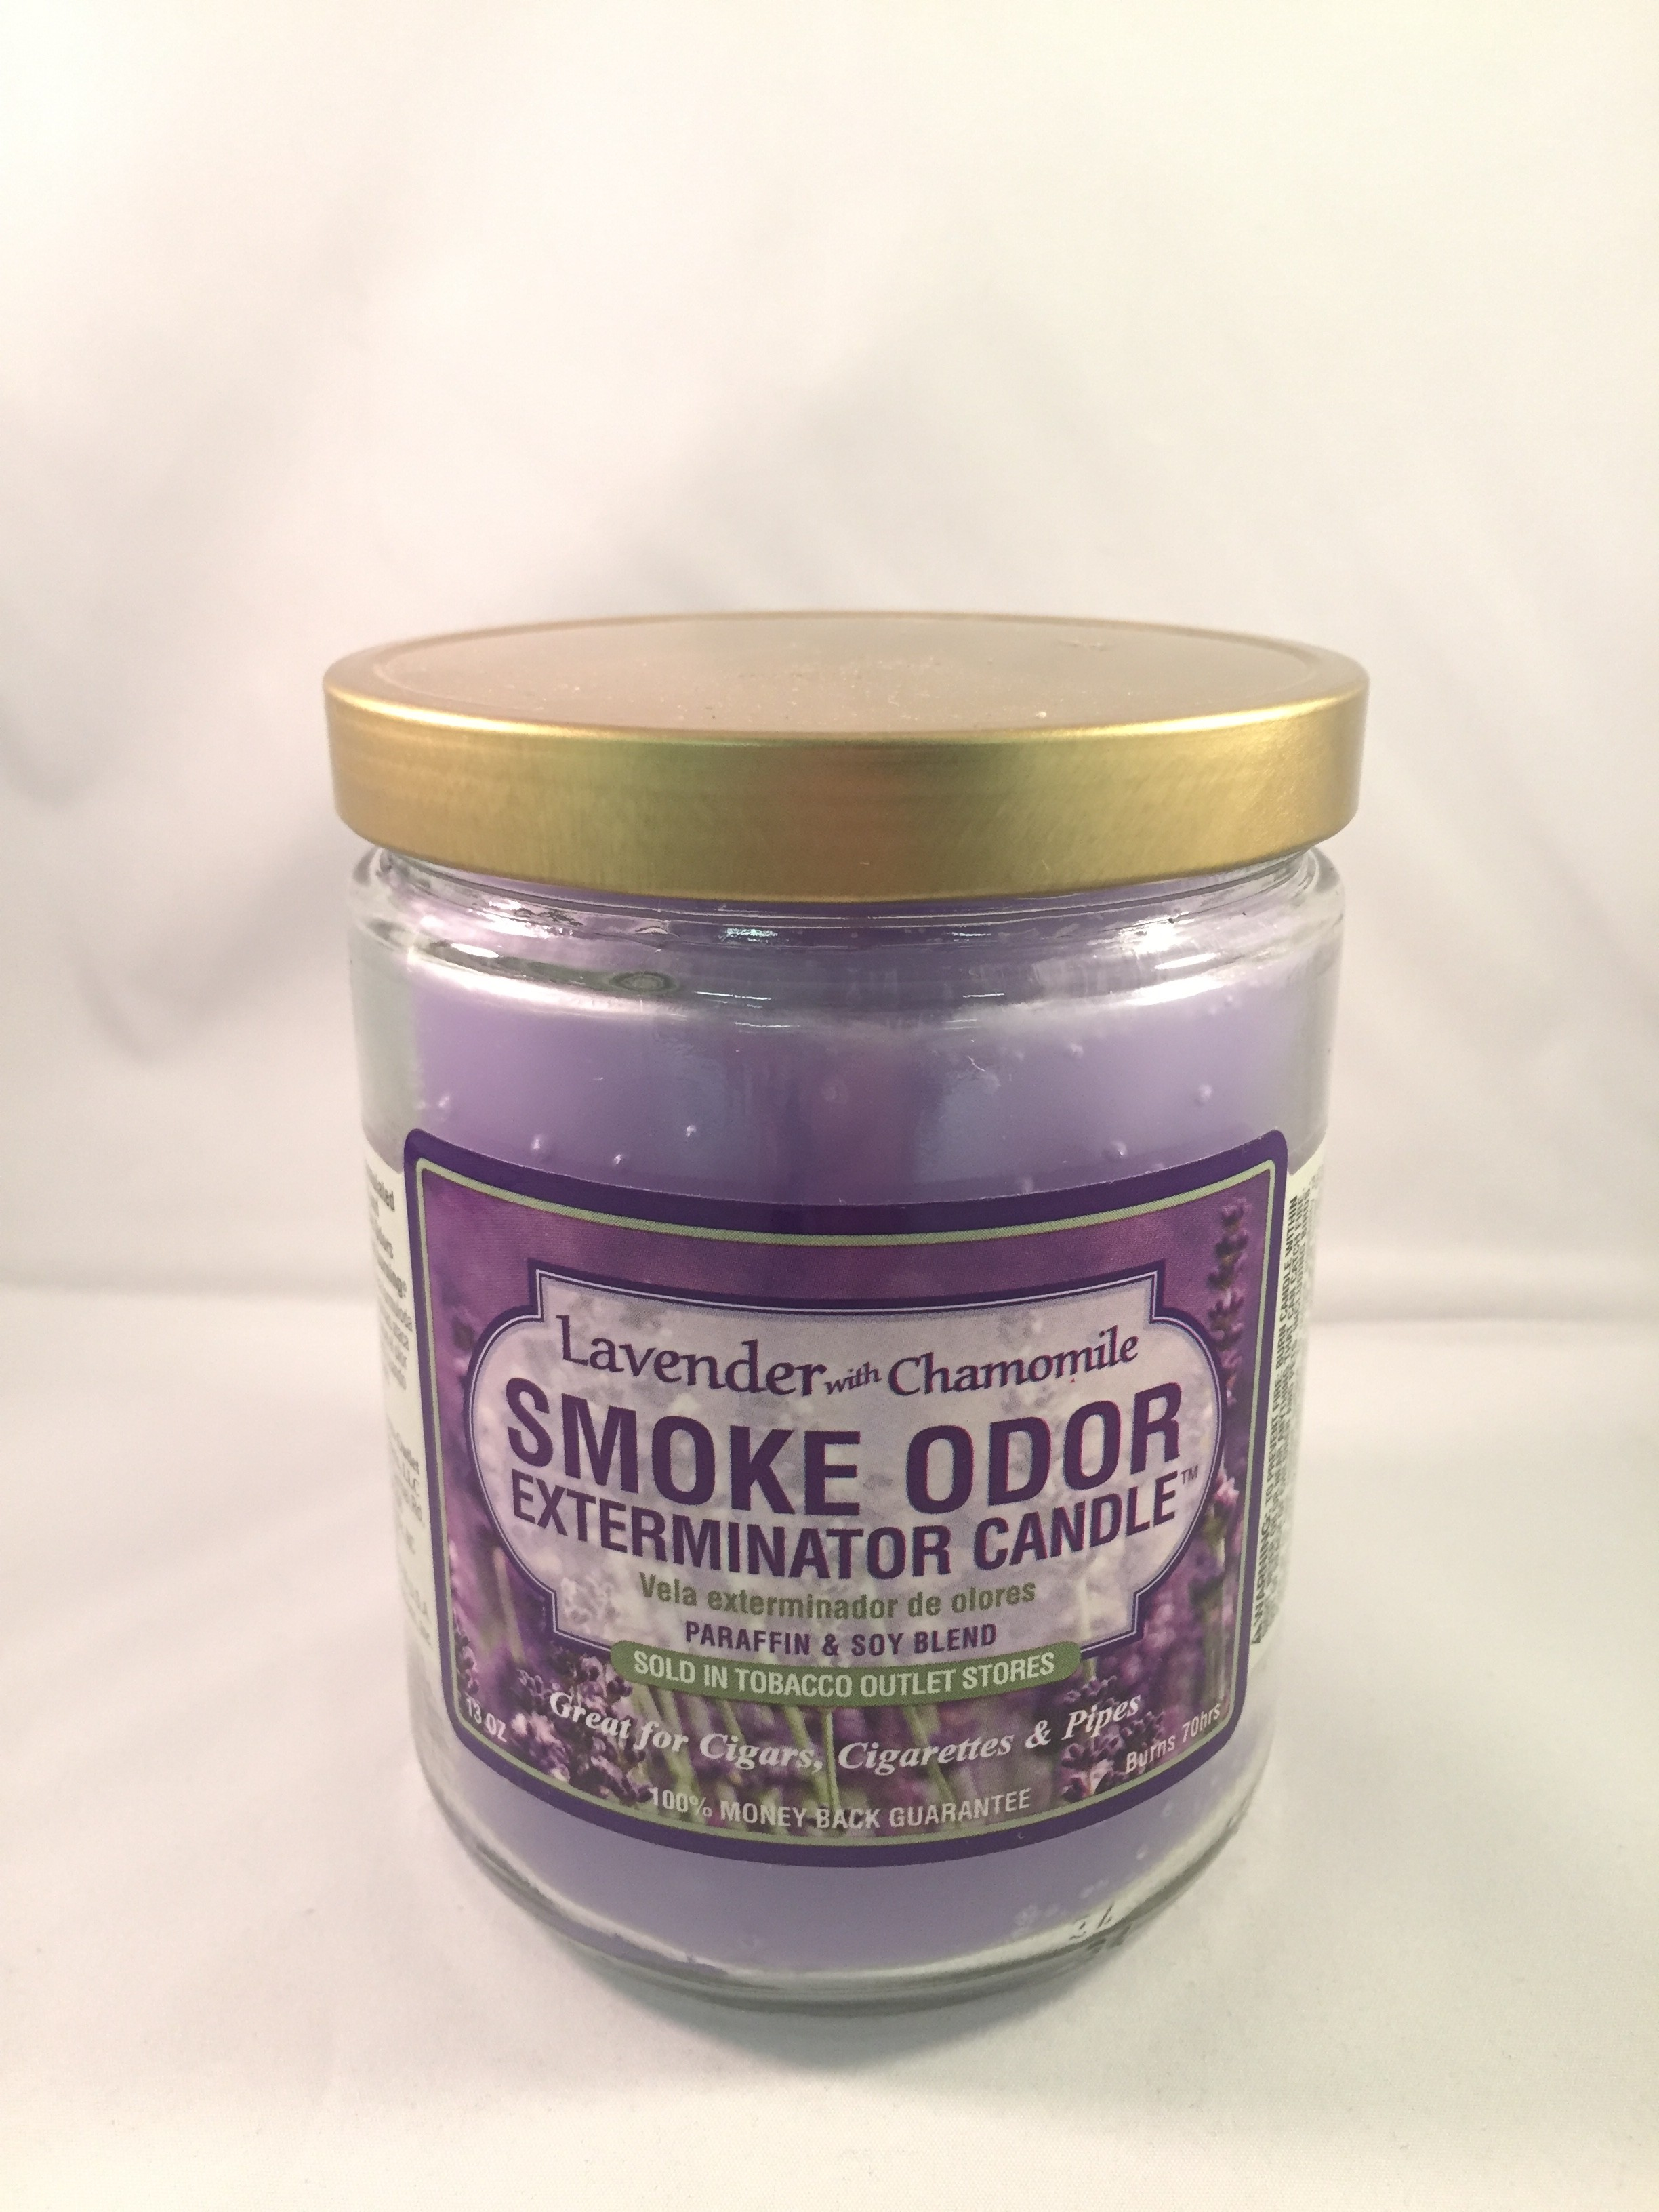 Smoke Odor Exterminator Candle - Lavender with Chamomile